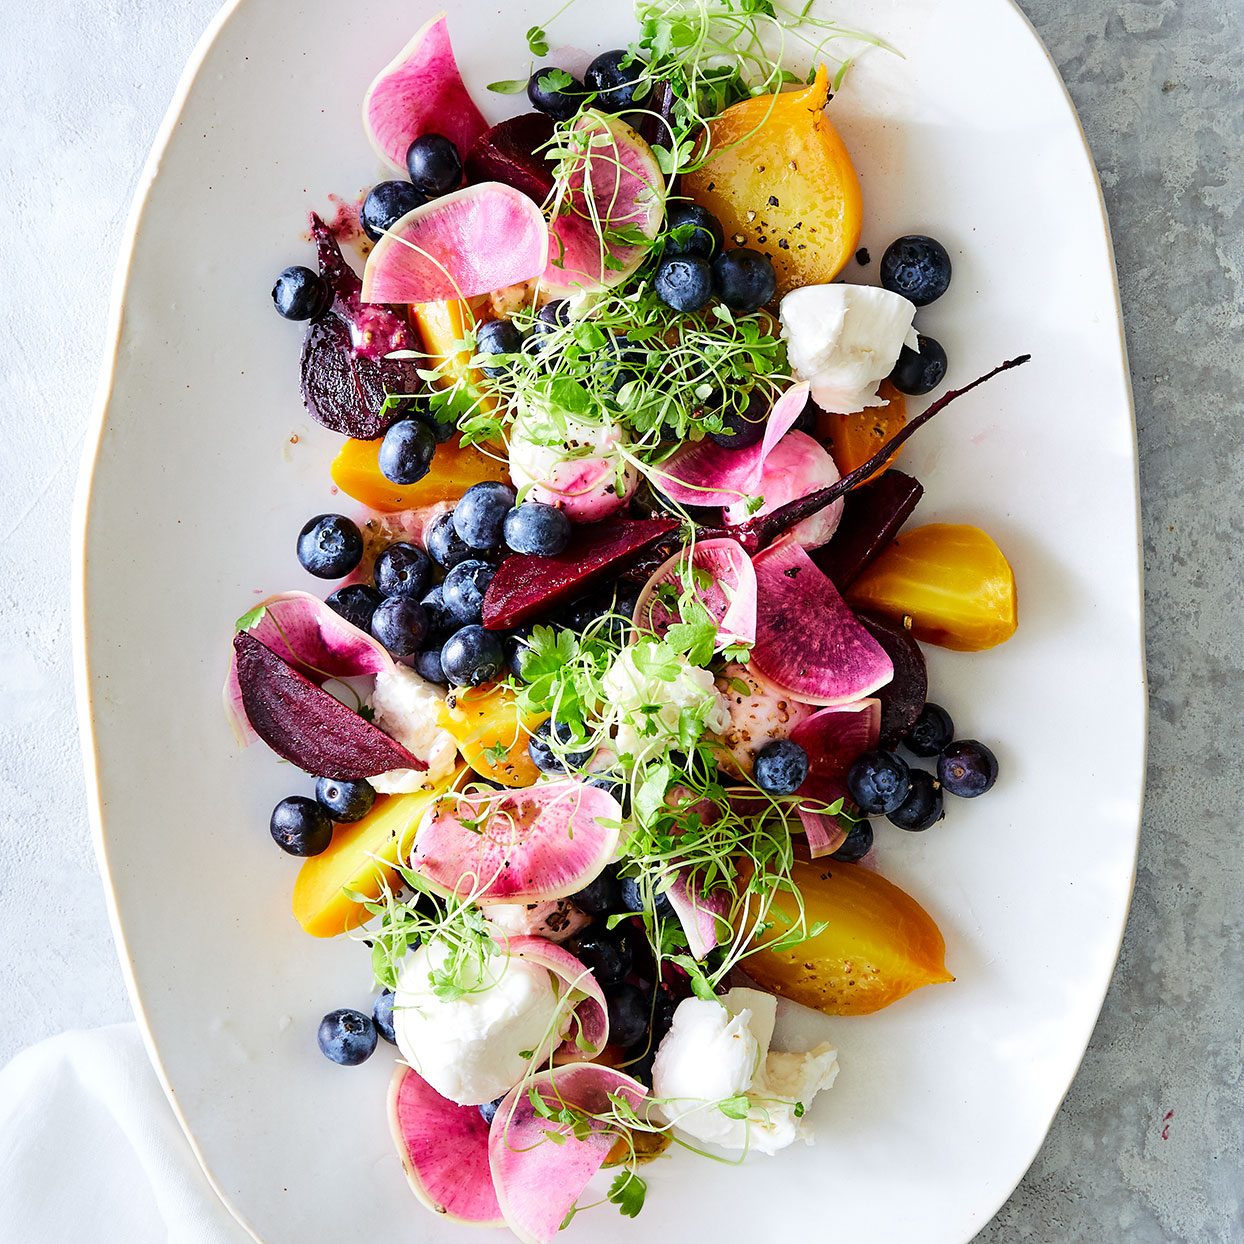 Roasted Beet & Blueberry Salad Betsy Andrews